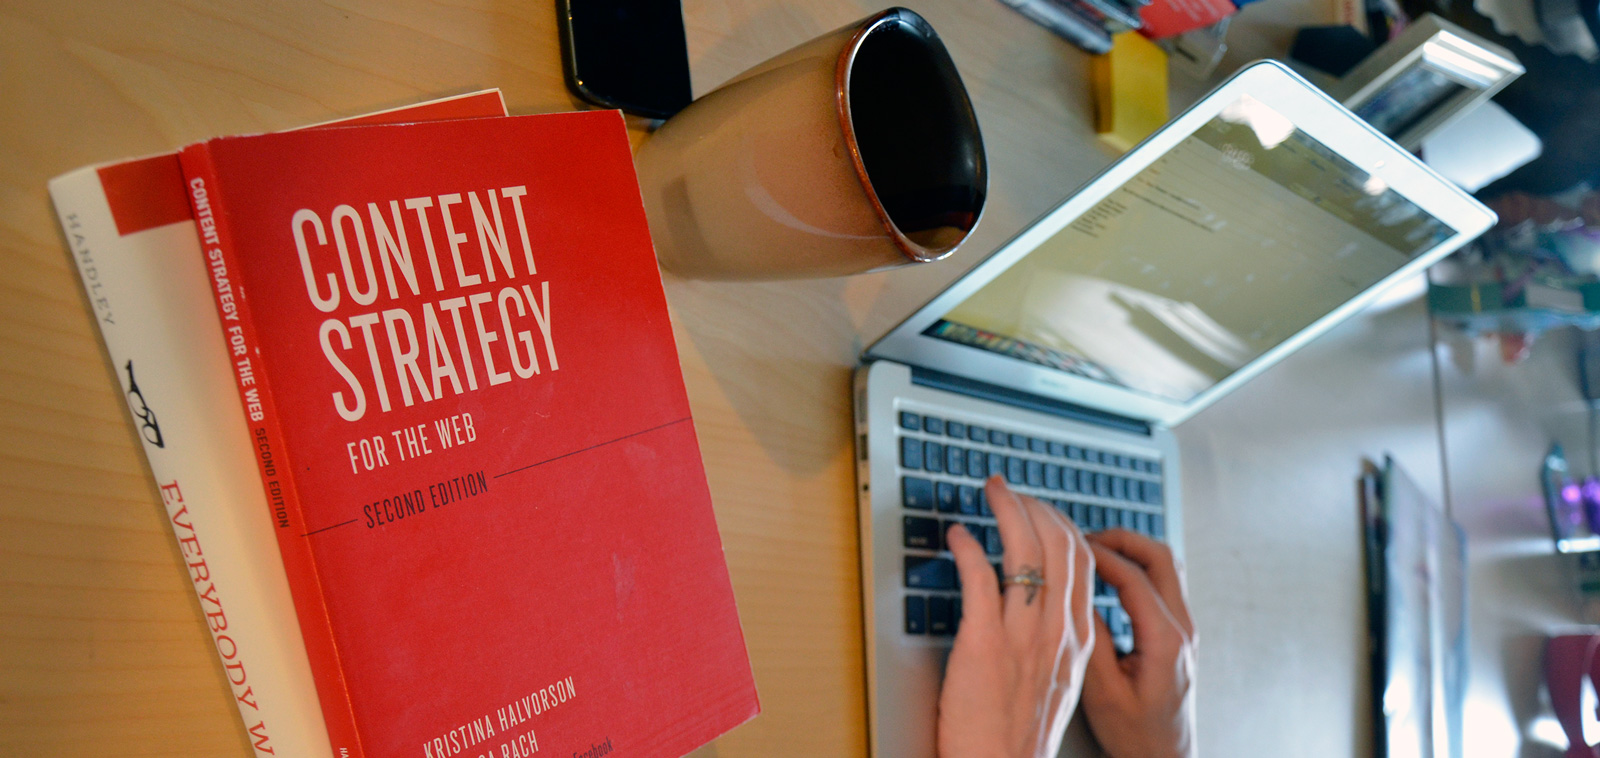 5 Best Practices for Your Website Content Strategy